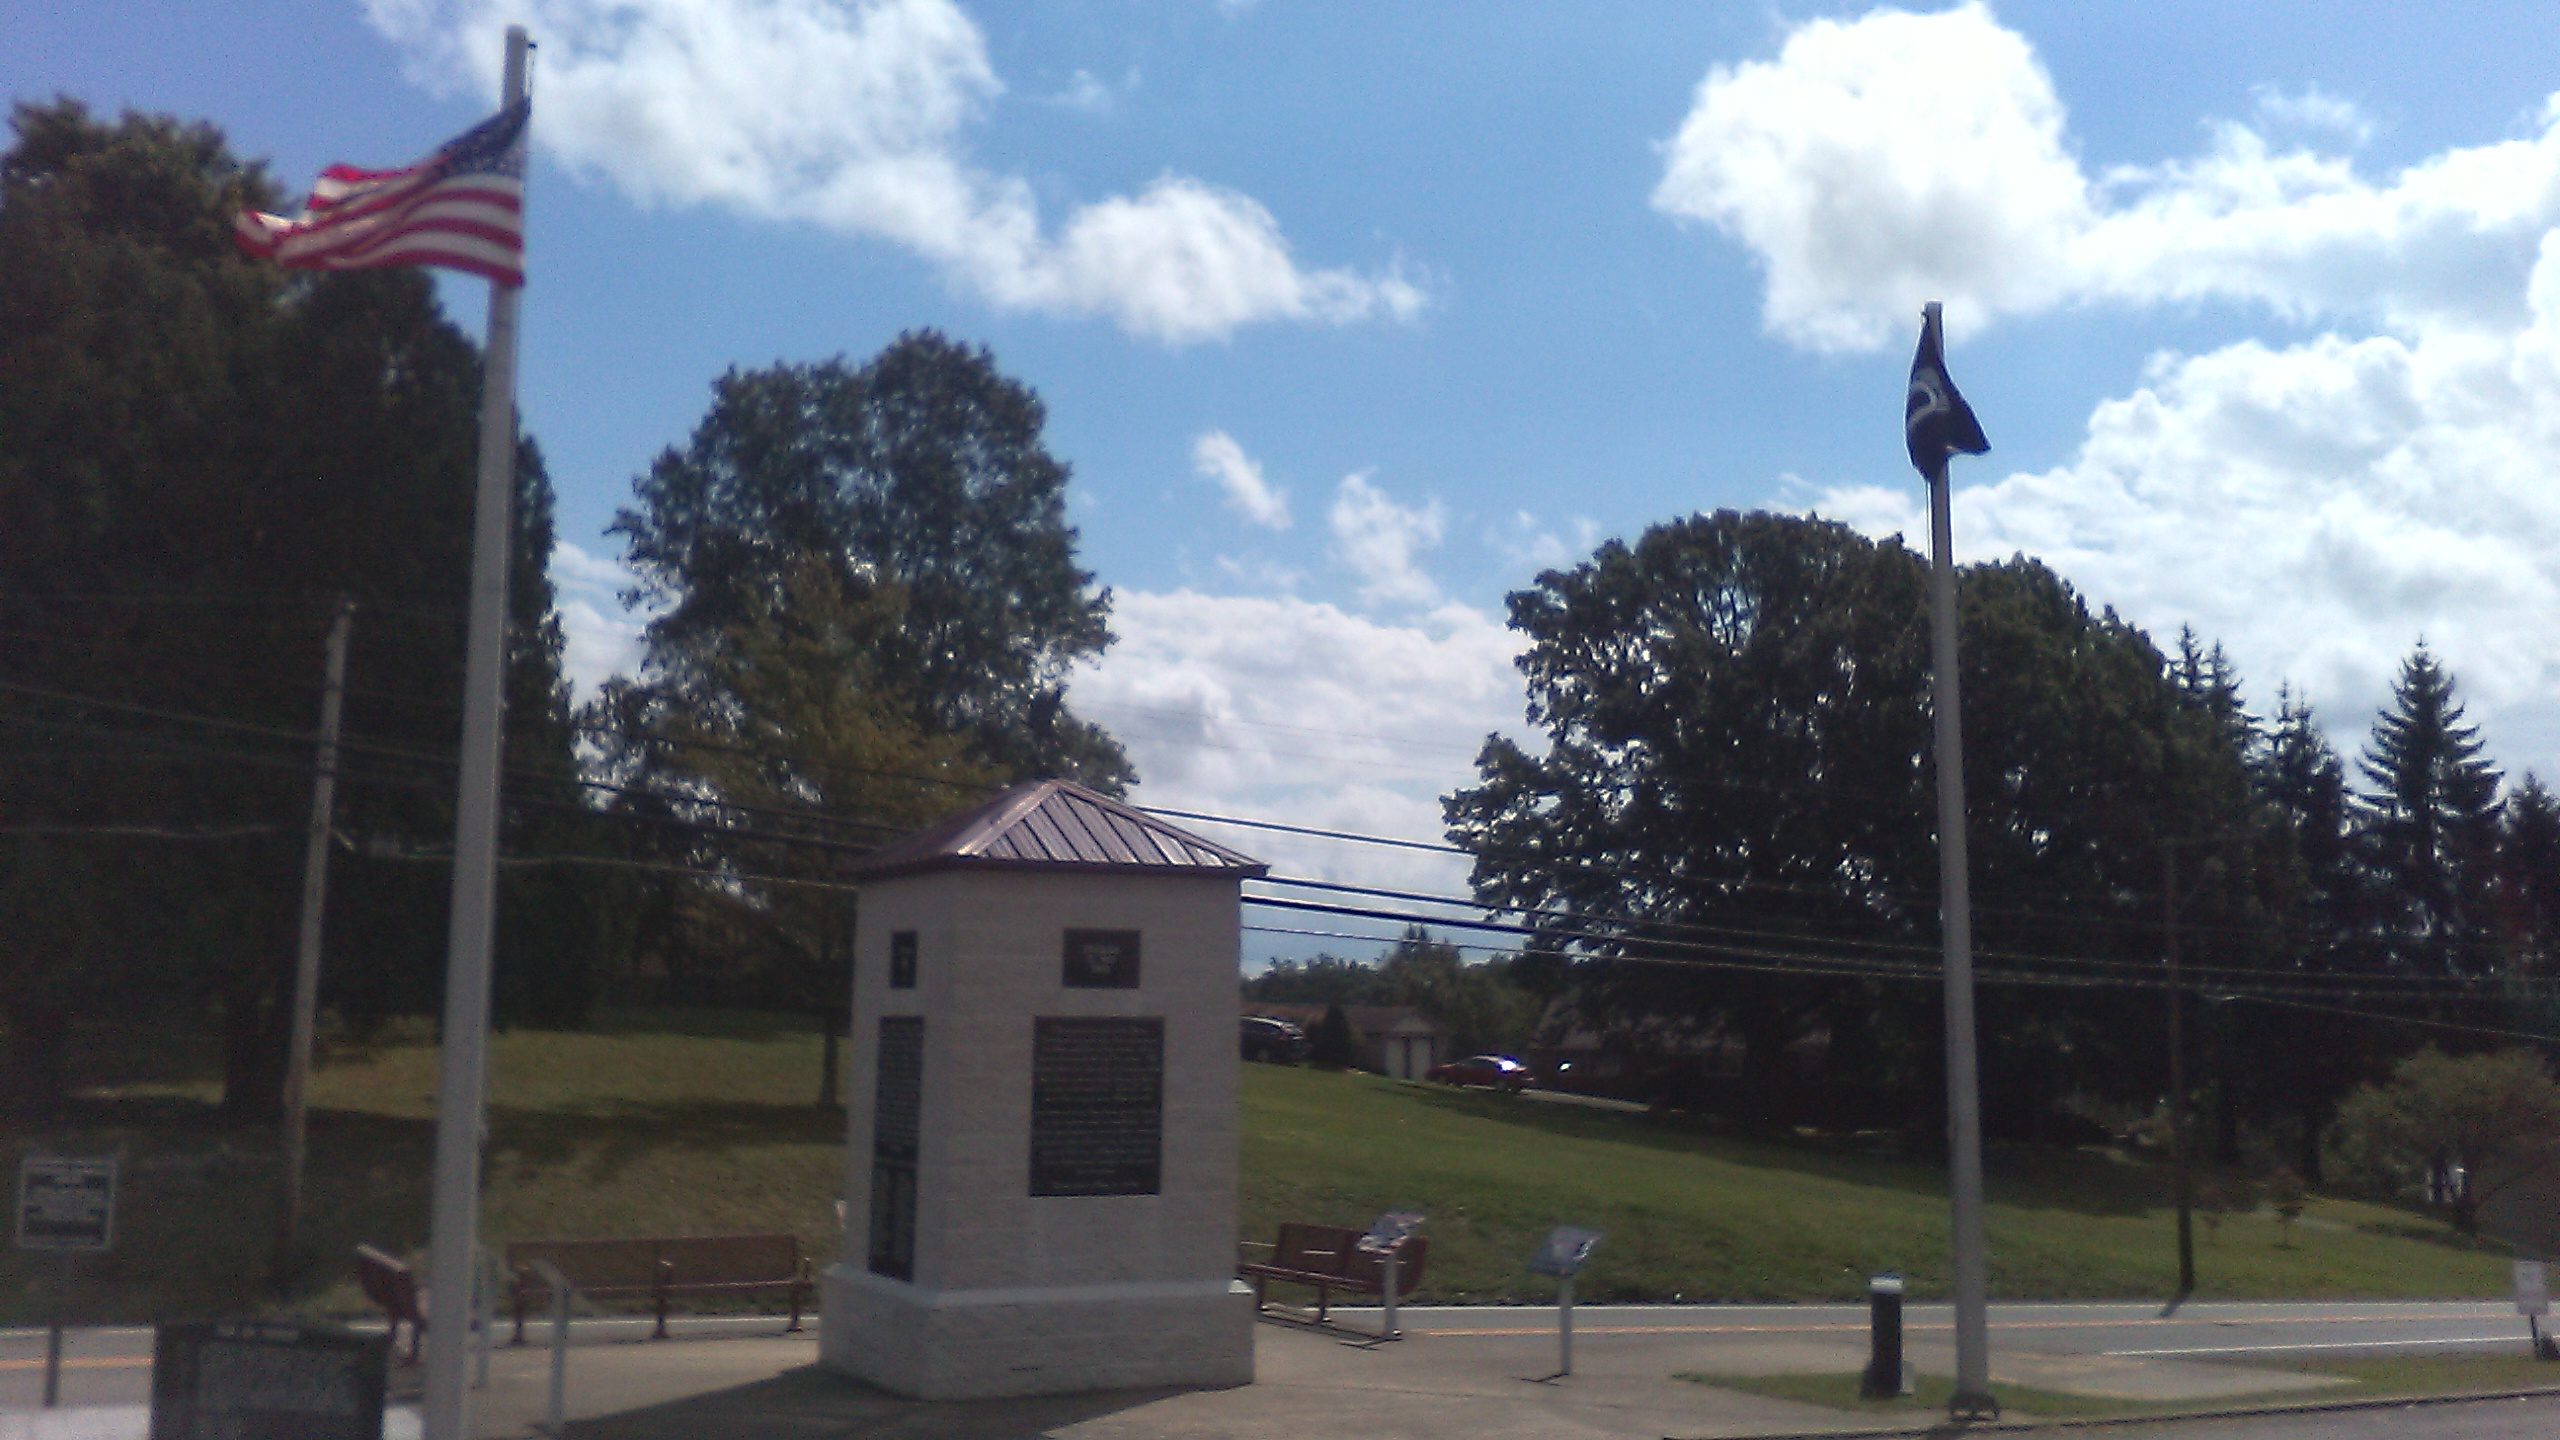 Picture of the rear side of the Raleigh County Veterans Memorial